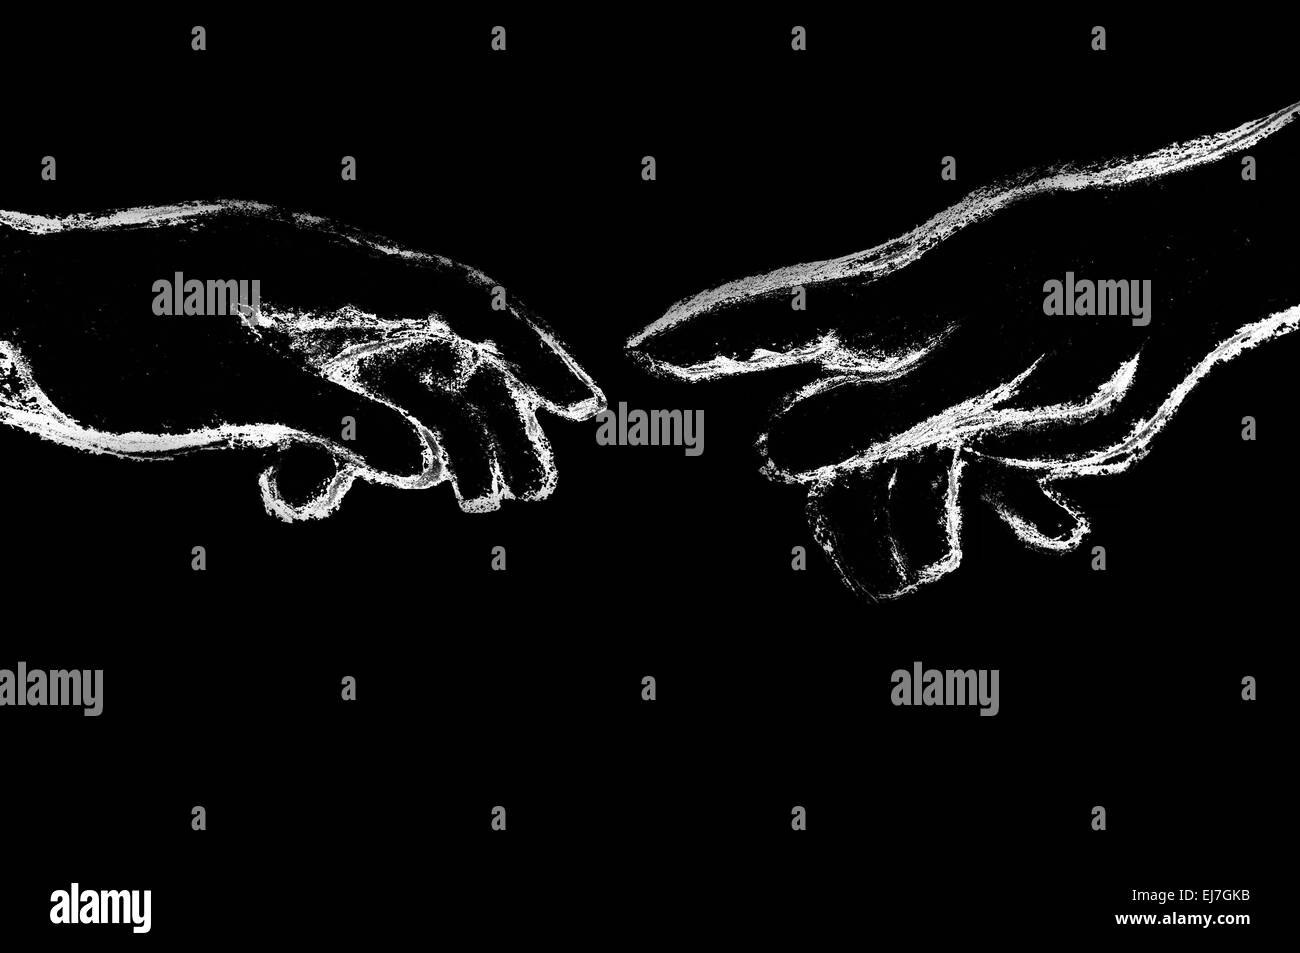 Pointer-black background the creation of Adam Stock Photo